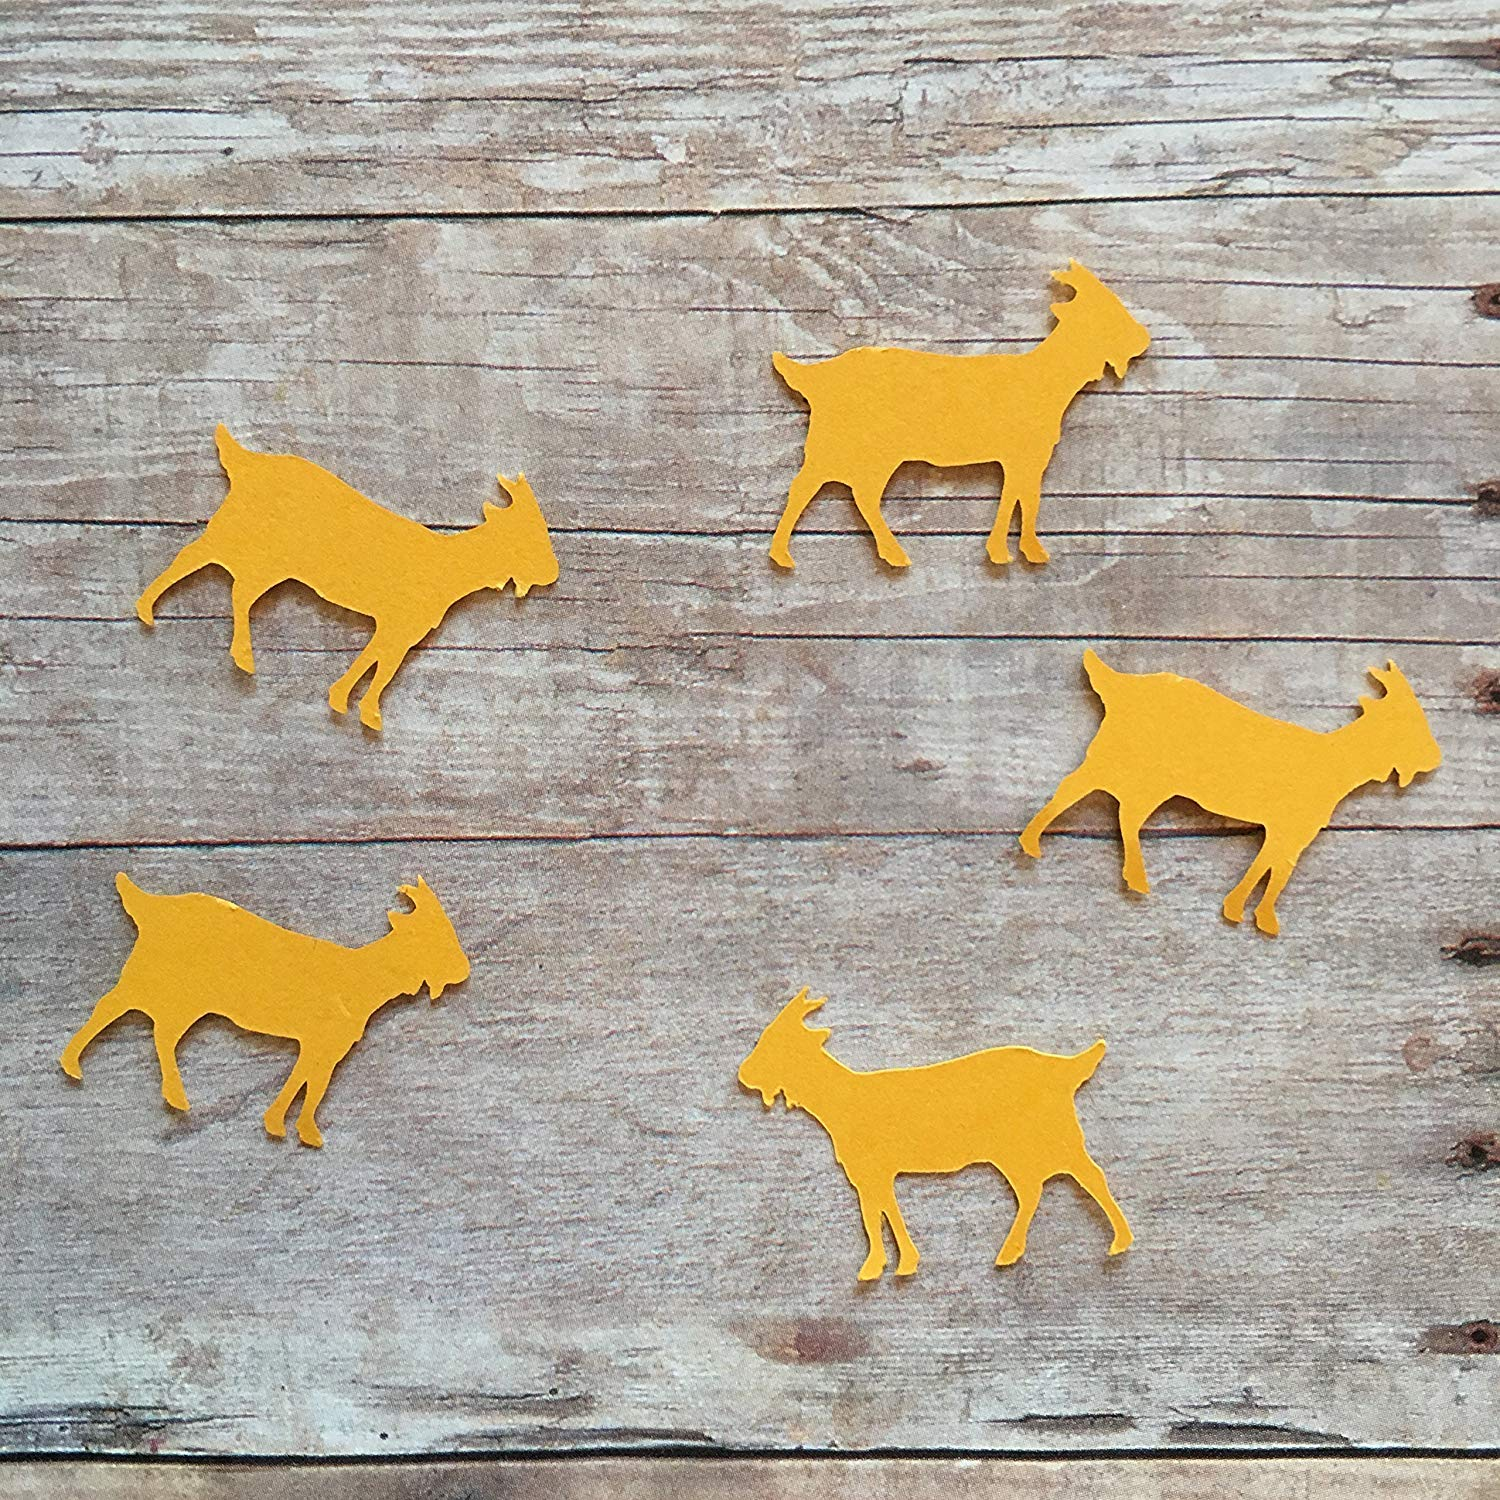 Goat Confetti, Goat Decorations, Animal Party Supplies, Farm Animal Theme, Animal Theme, Table Scatter, Goat Cut Out